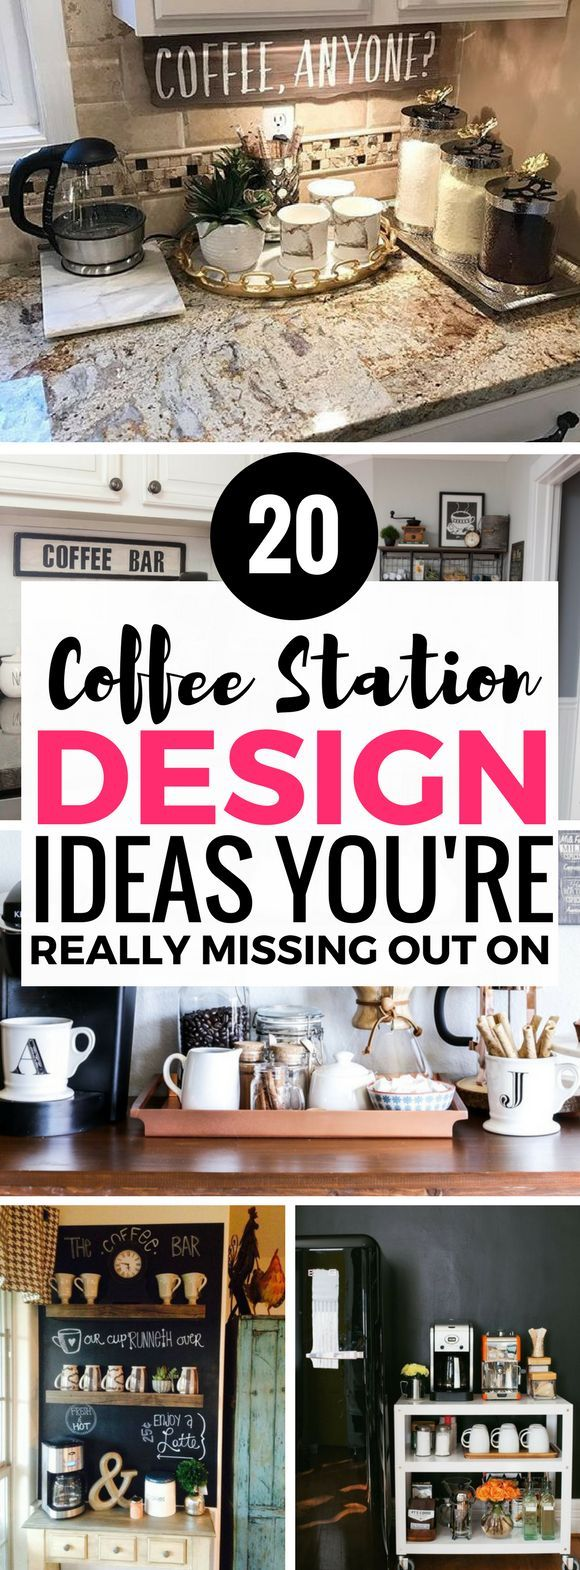 I'm so IN LOVE with these diy coffee station ideas. They all look so AMAZING. Definitely going to do this. So many fantastic ways to make the kitchen and home decor look great with these coffee bar ideas!